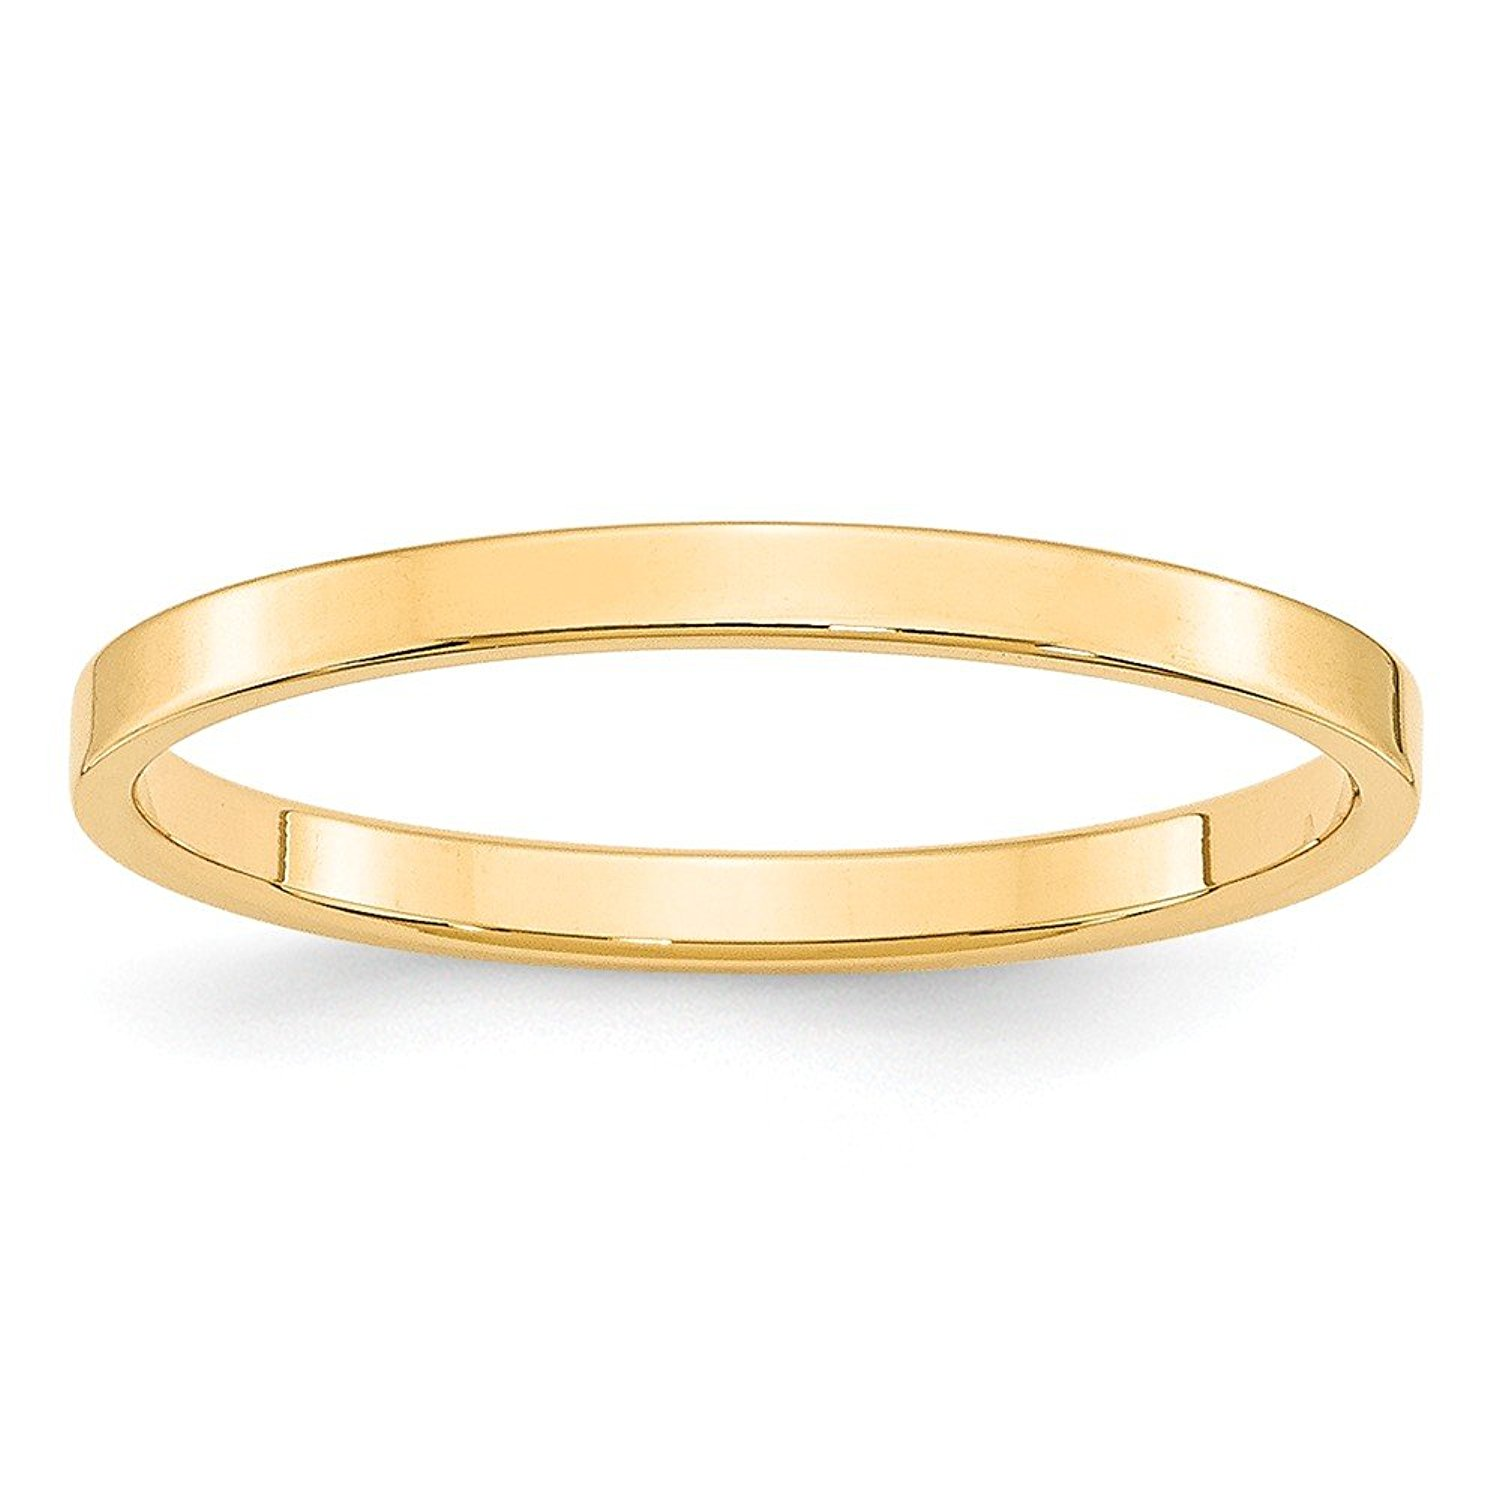 Top 10 Jewelry Gift 14KY 2mm LTW Flat Band Size 8